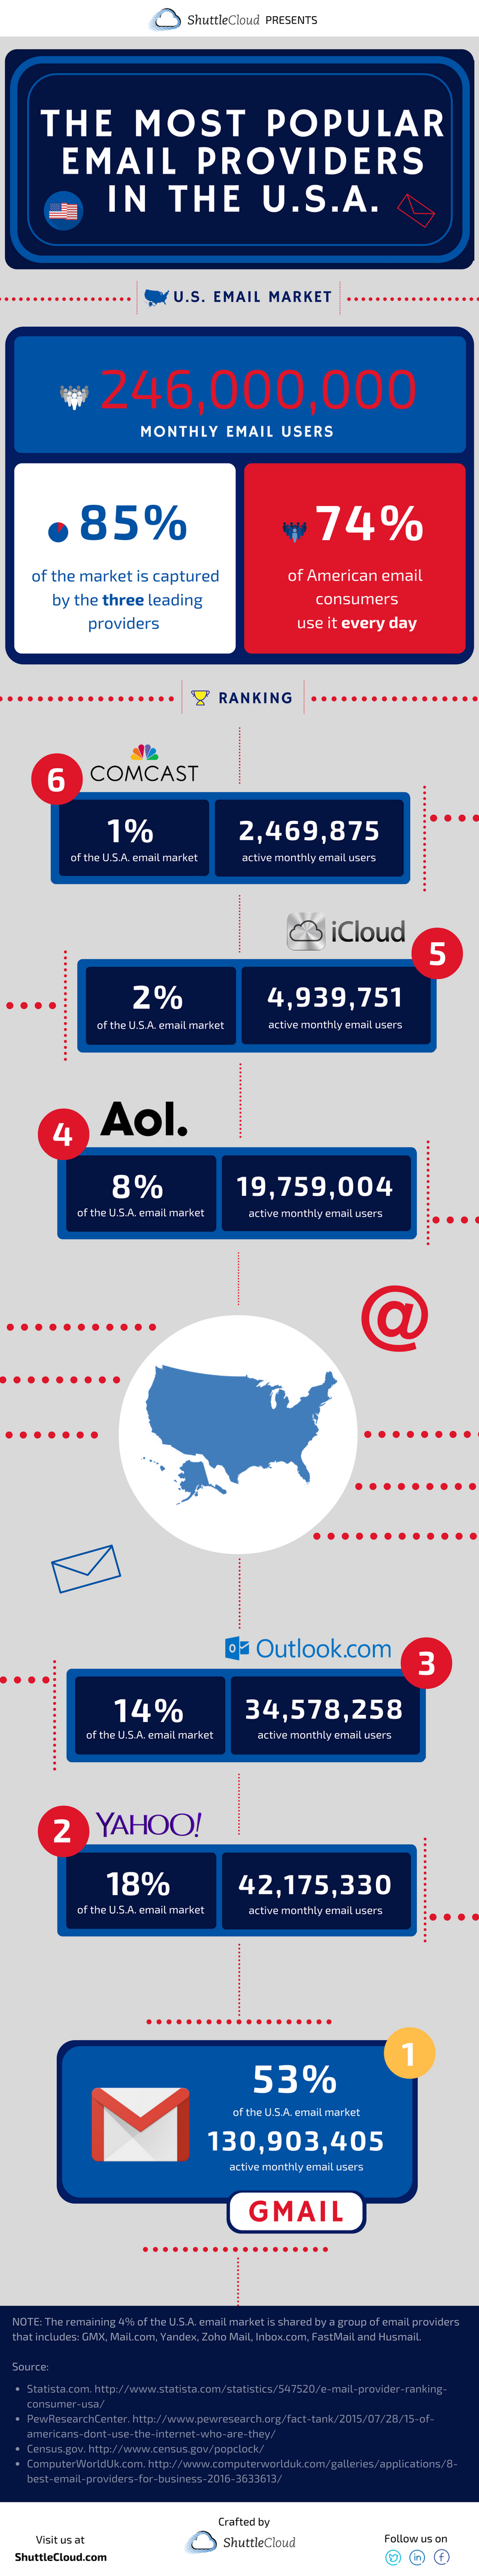 USA Email Providers - Infographic (ShuttleCloud)